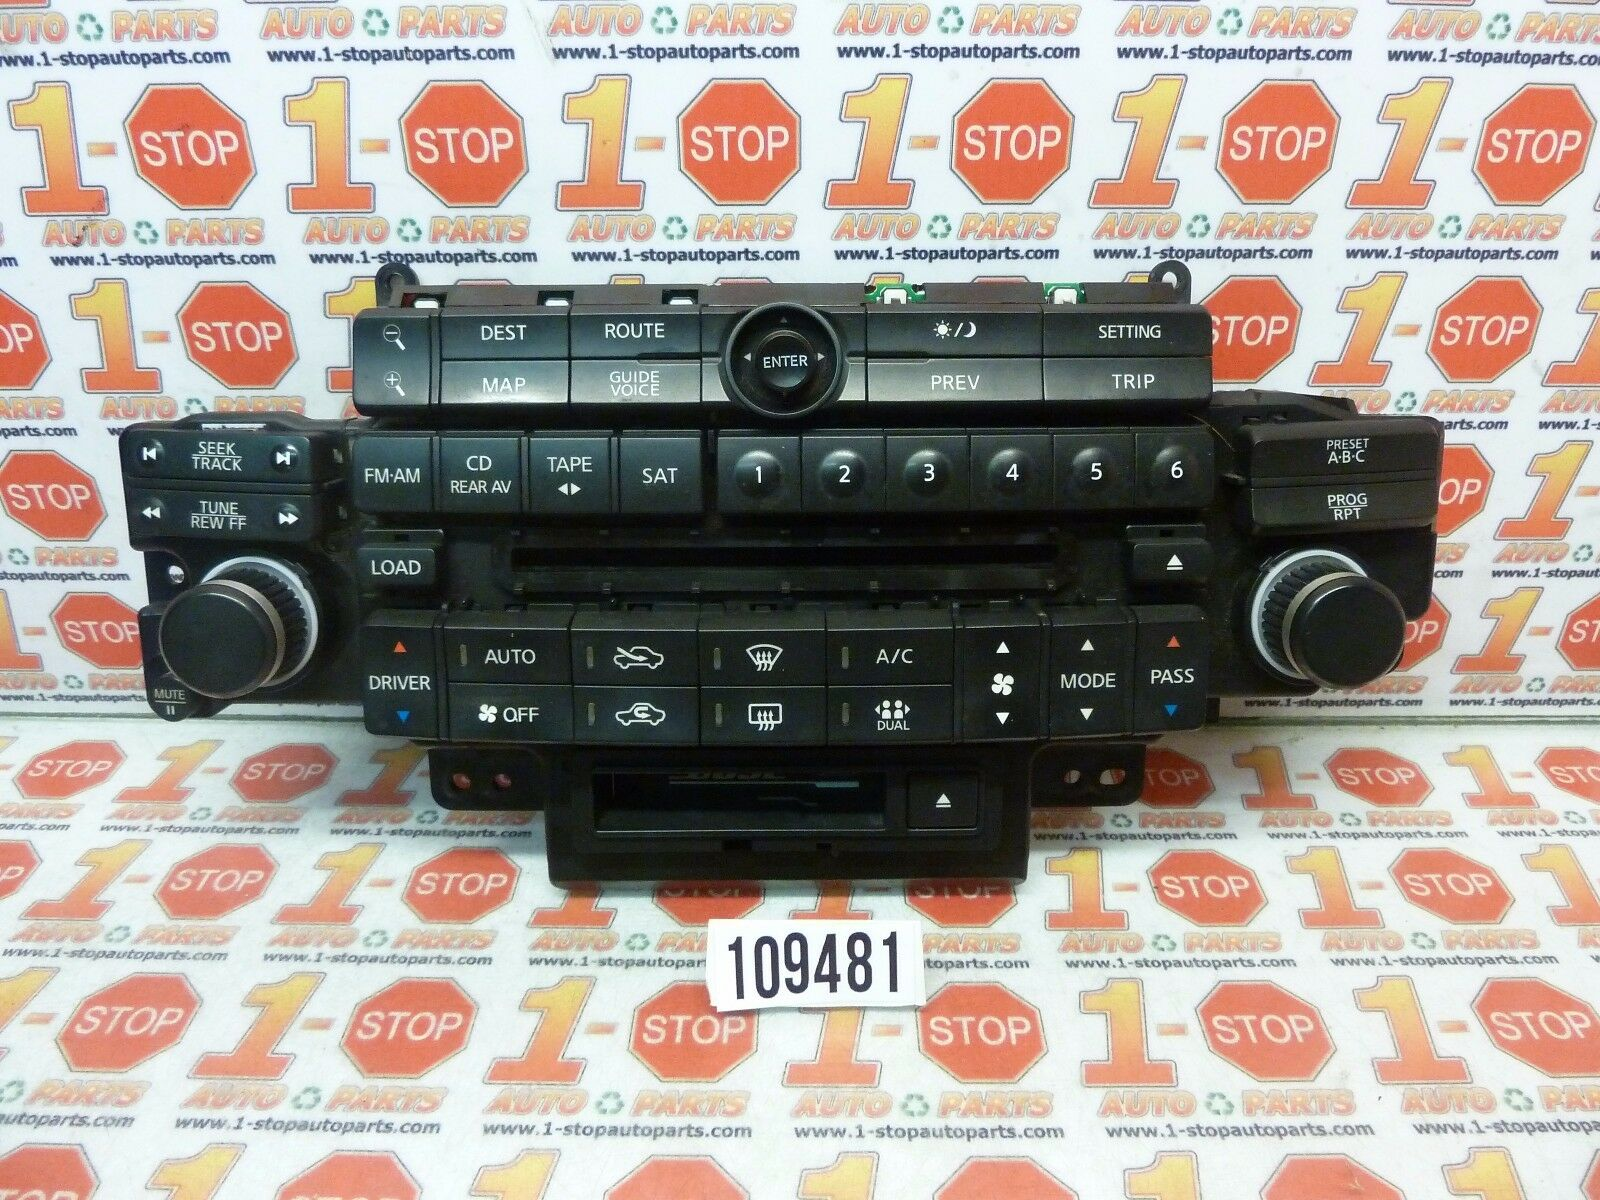 04 05 Infiniti Fx35 Fx45 Radio Gps Navigation Ac Control Face Plate  28396-Cg710 1 of 5FREE Shipping See More